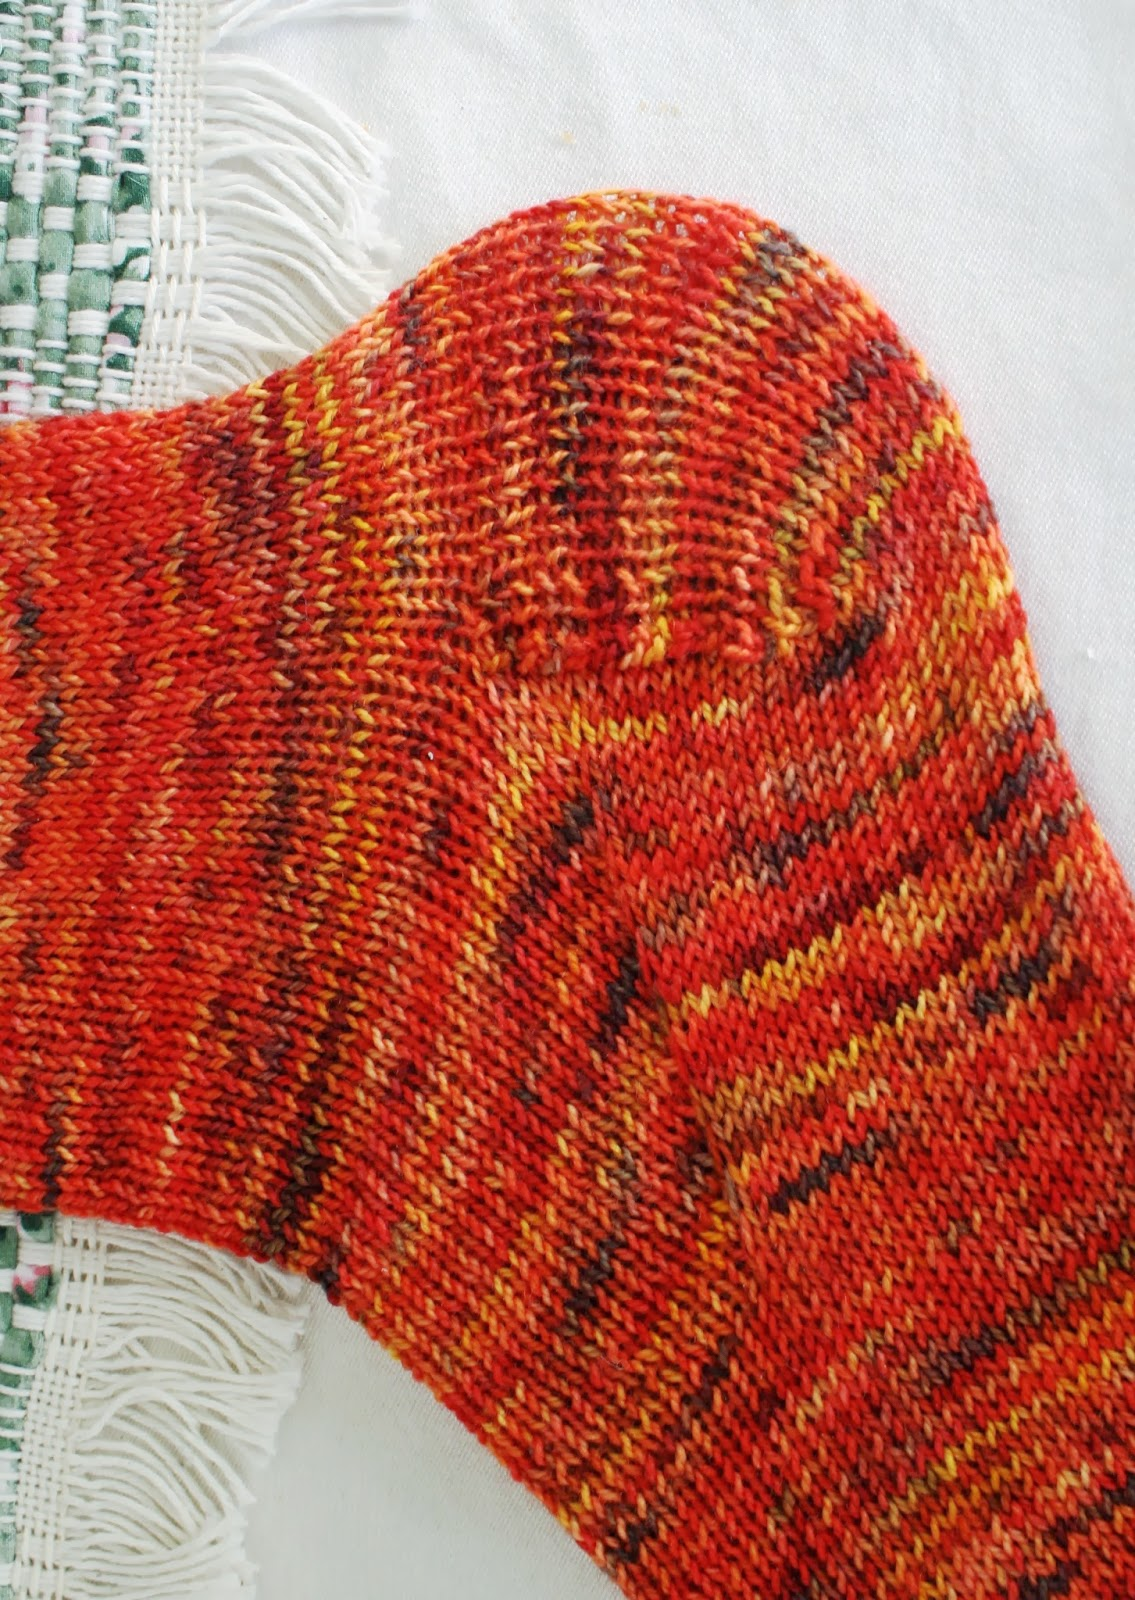 Sock Knitting Blogs : QueerJoes Knitting Blog: Is Bestiality When You LOVE Animals?